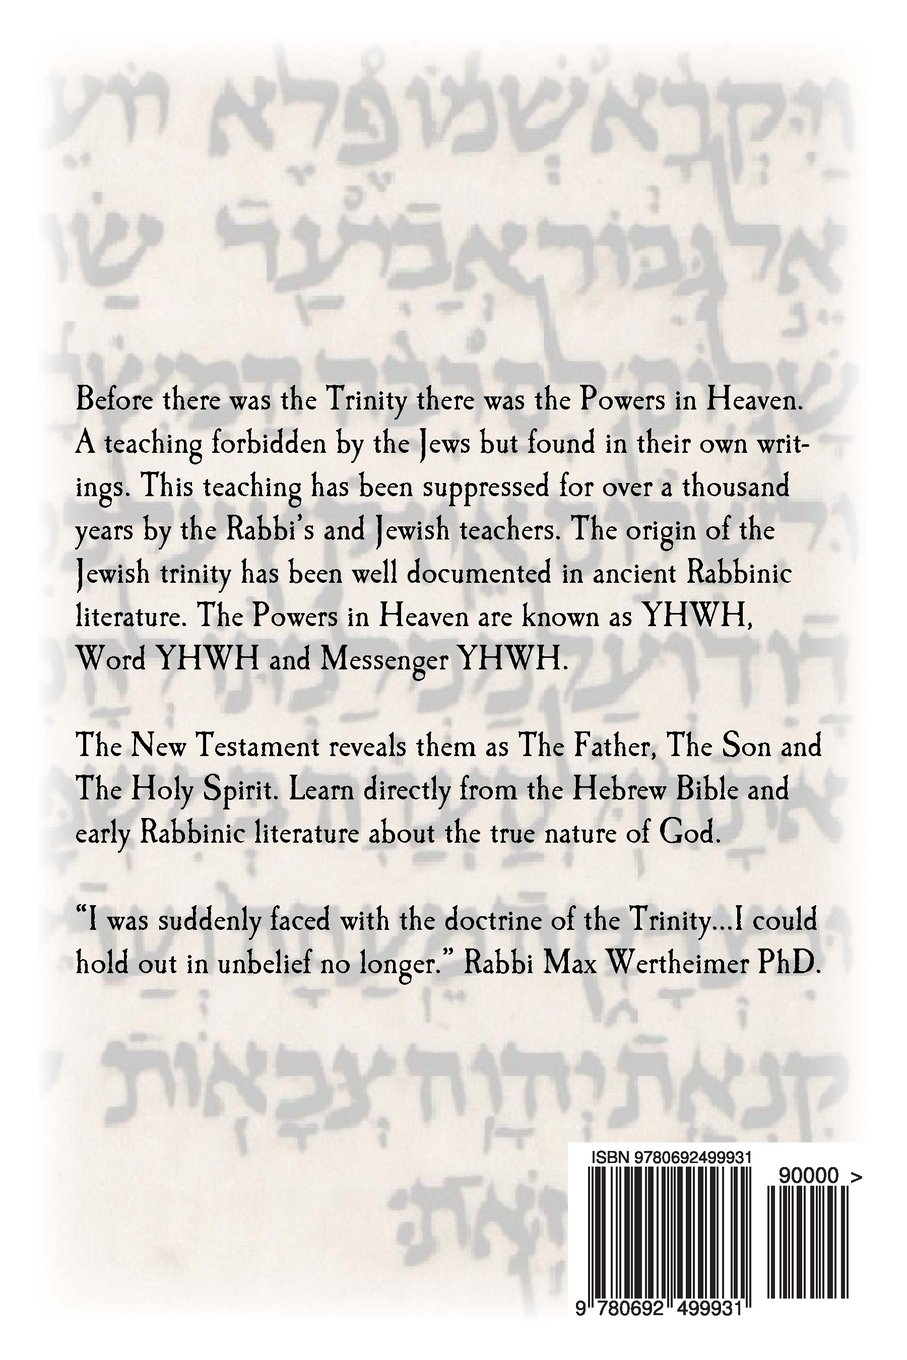 From yhwh to elohim to messiah the jewish origin to the trinity dr from yhwh to elohim to messiah the jewish origin to the trinity dr al garza a g shlomo phd sefer press rabbi tzvi nassi 9780692499931 amazon fandeluxe Images